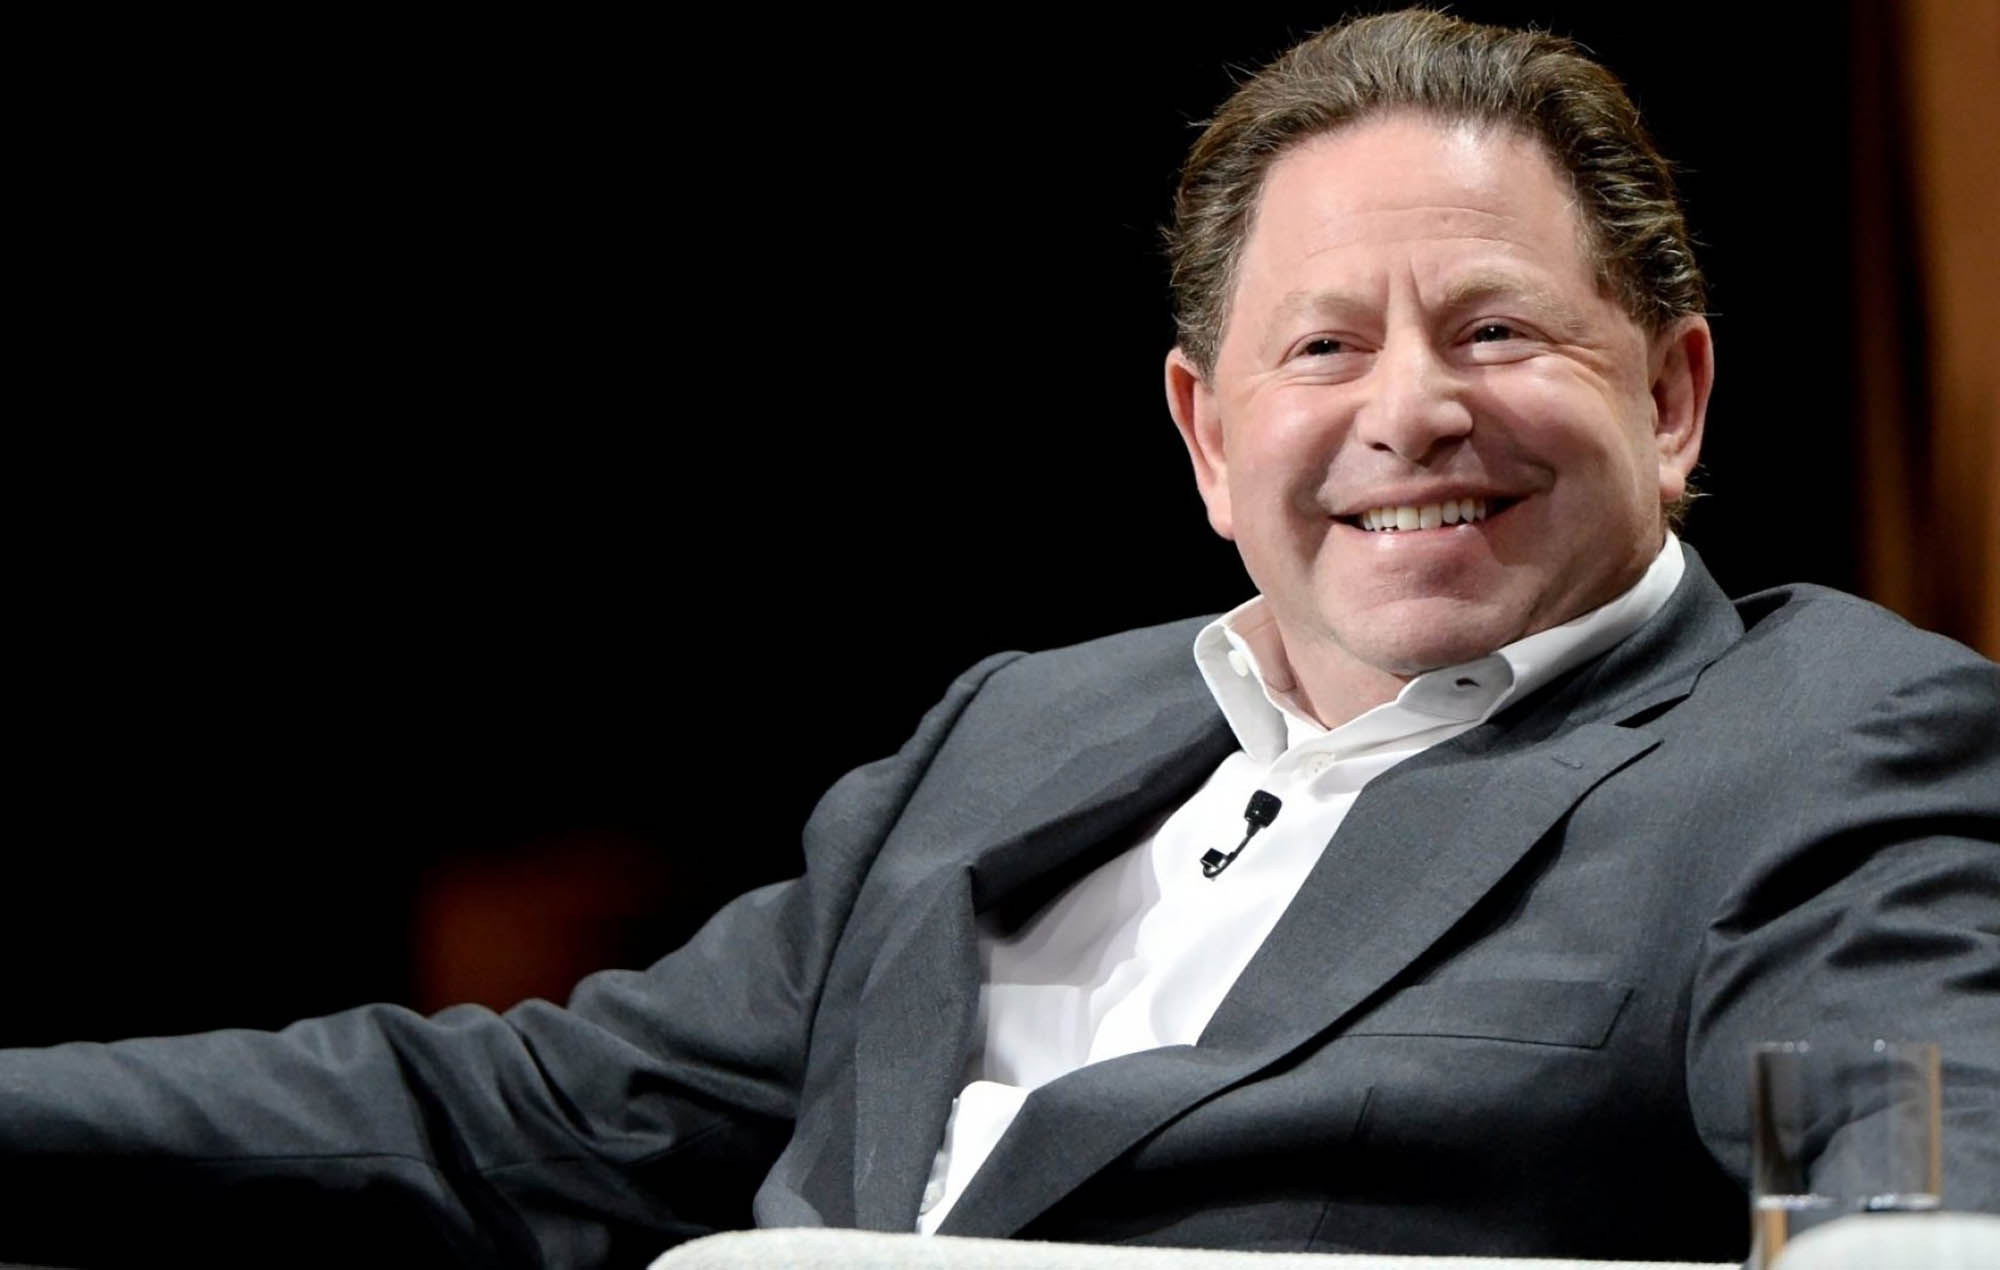 Activision Blizzard CEO Bobby Kotick. Image credit: Getty Images